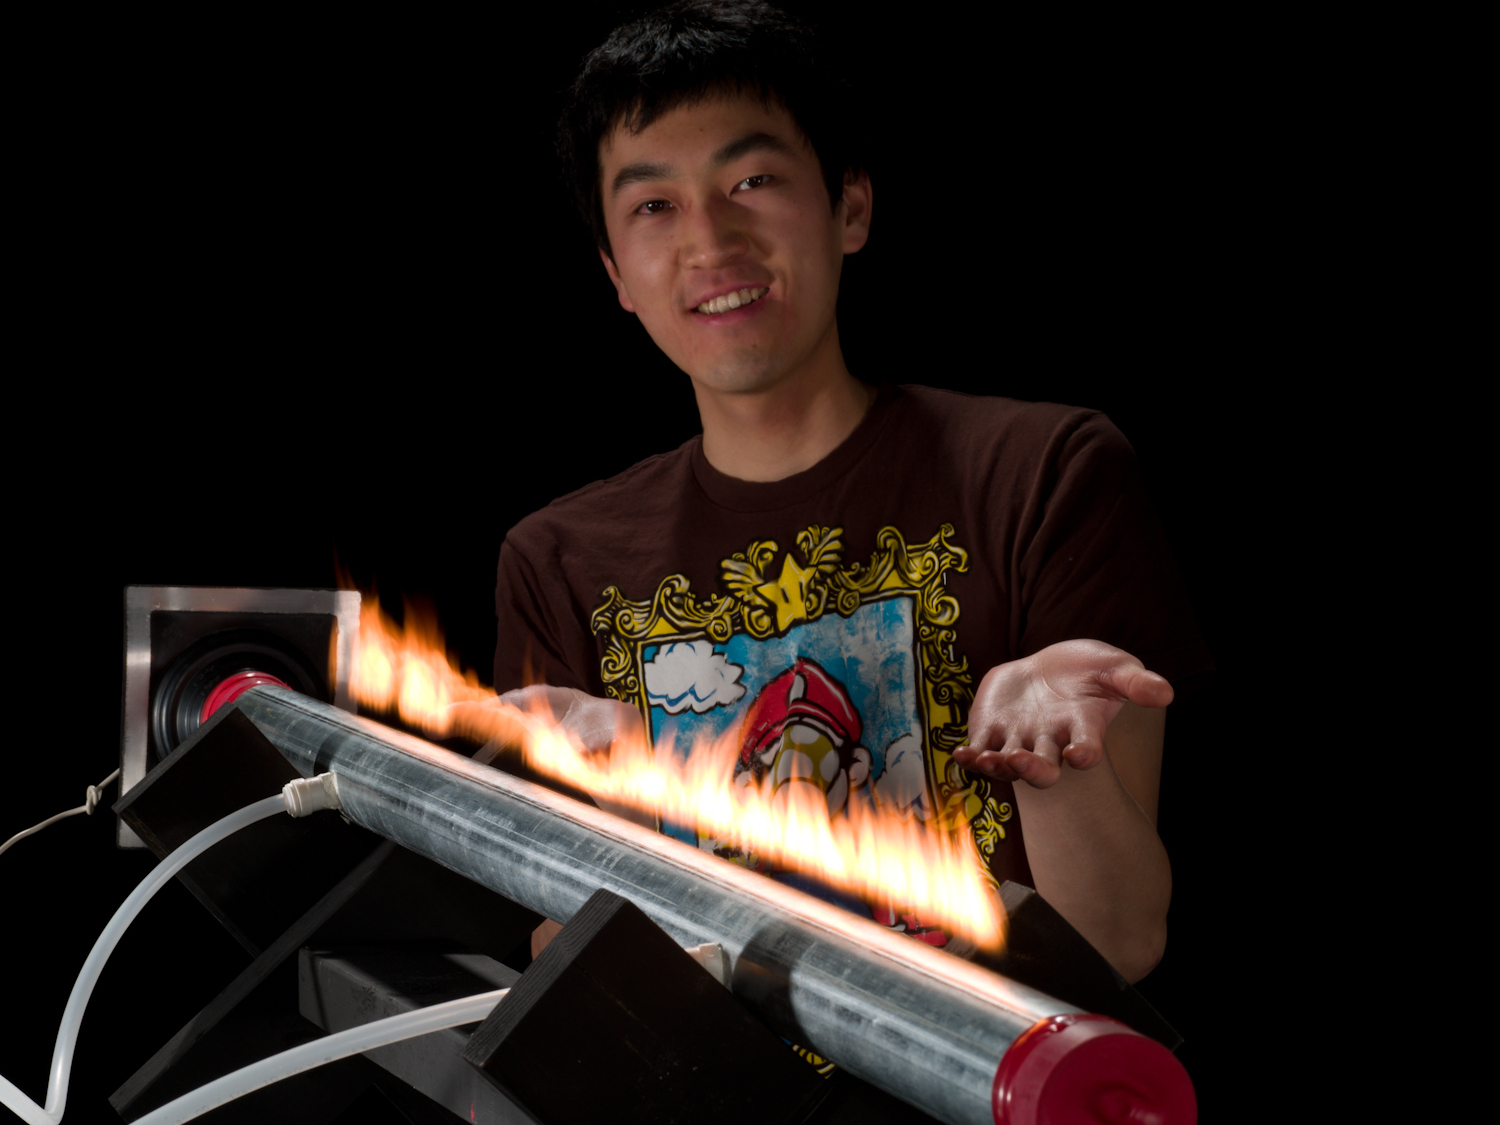 New Project: The Flame Tube